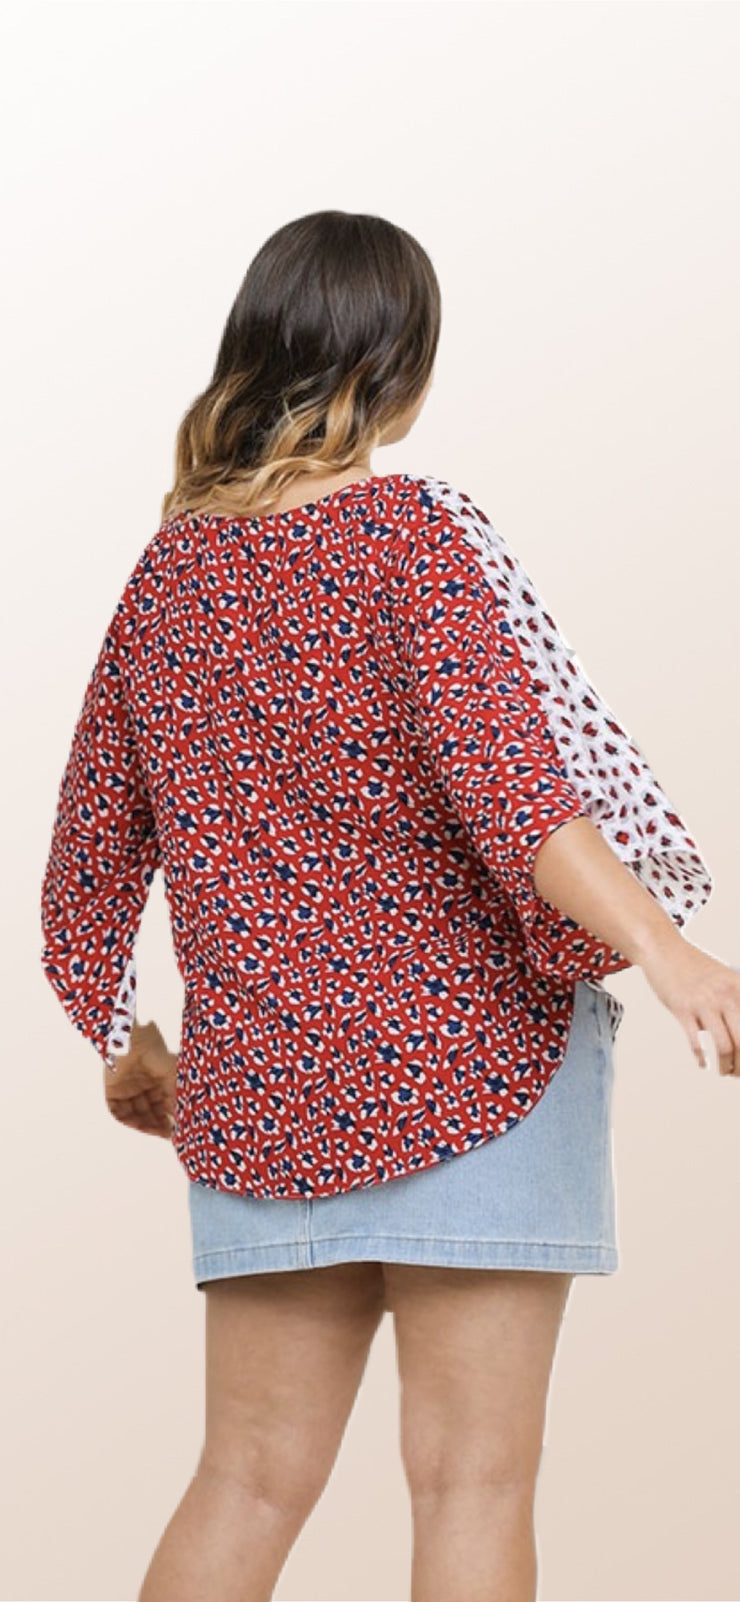 Animal Print Top - [product_style] - Tops, Clothing - WILLOWTREE MARKET